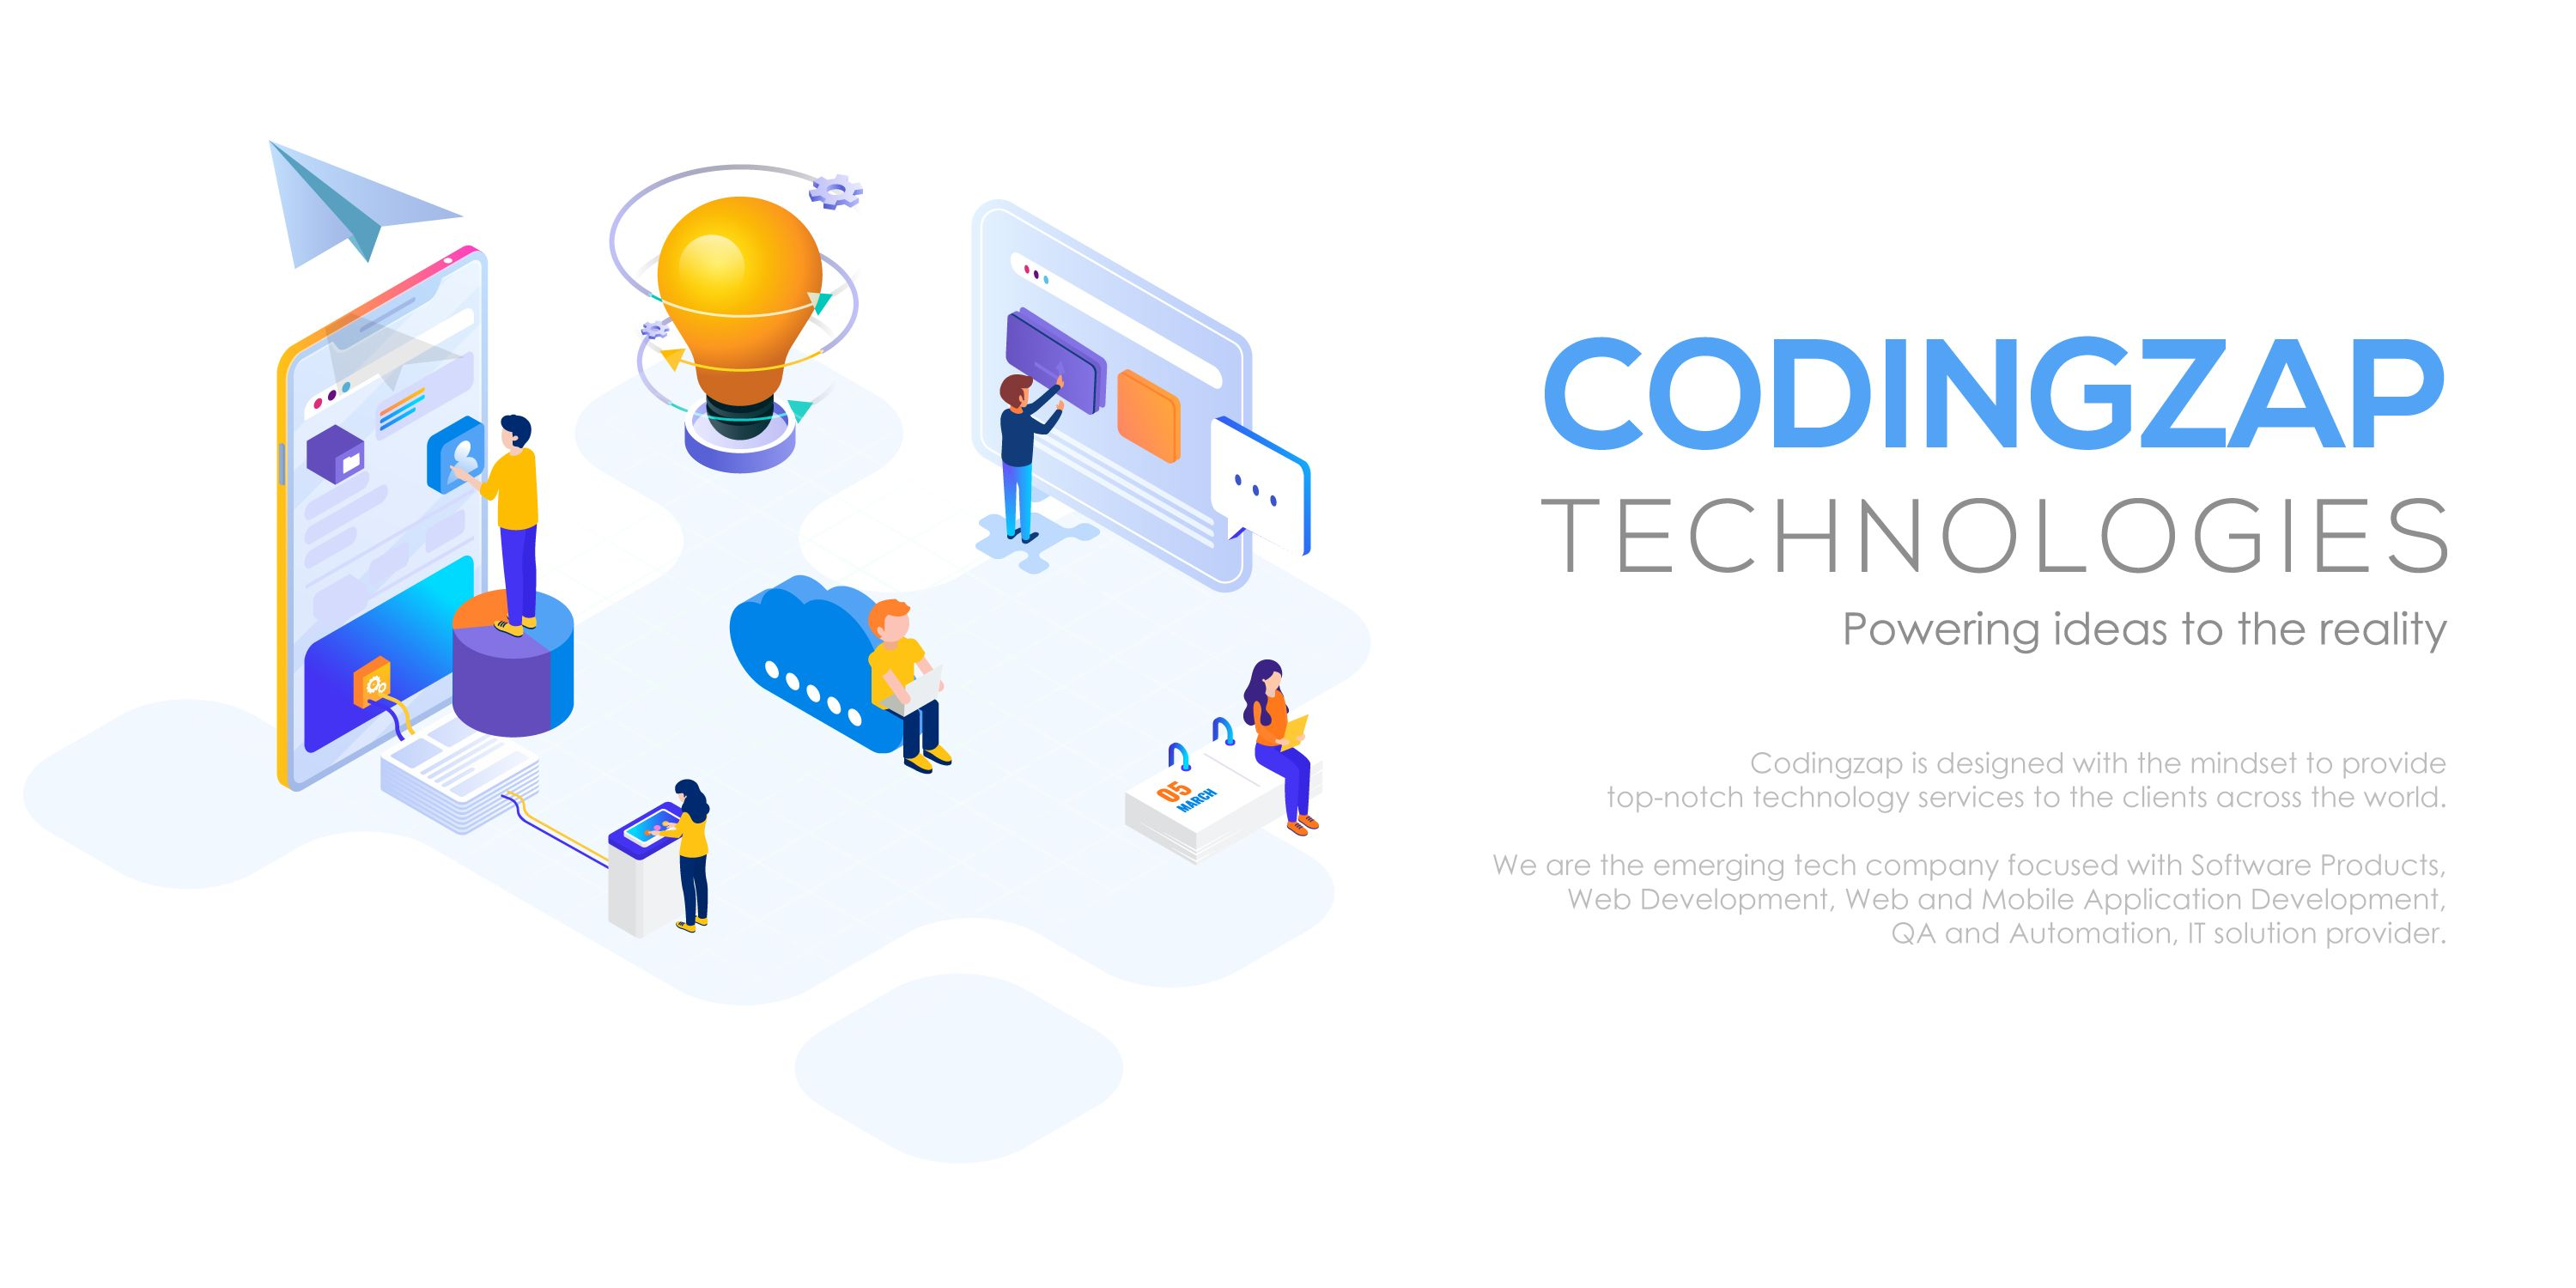 about codingzap.com - Our Company